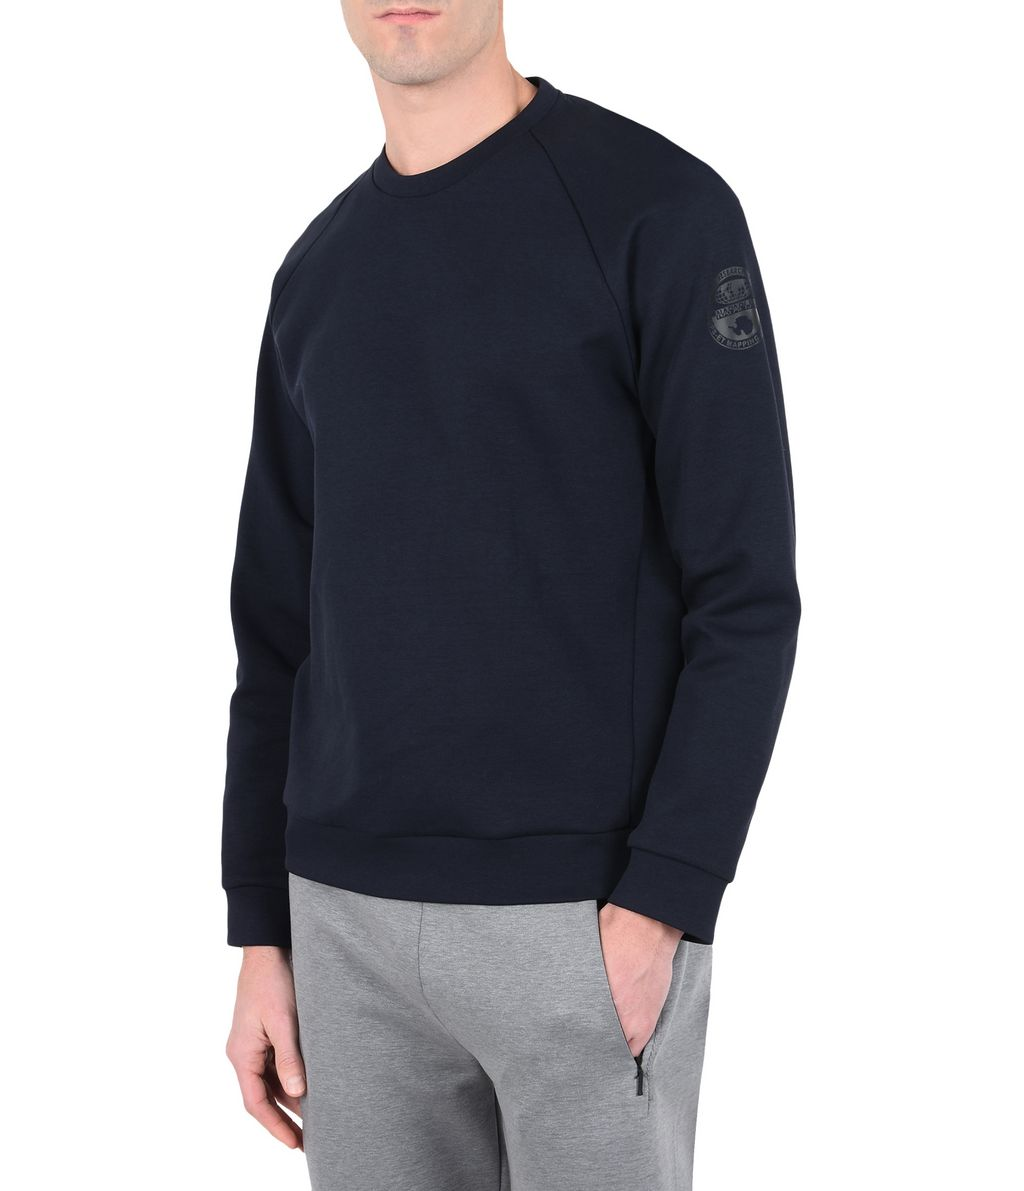 NAPAPIJRI BOK MAN SWEATSHIRT,DARK BLUE